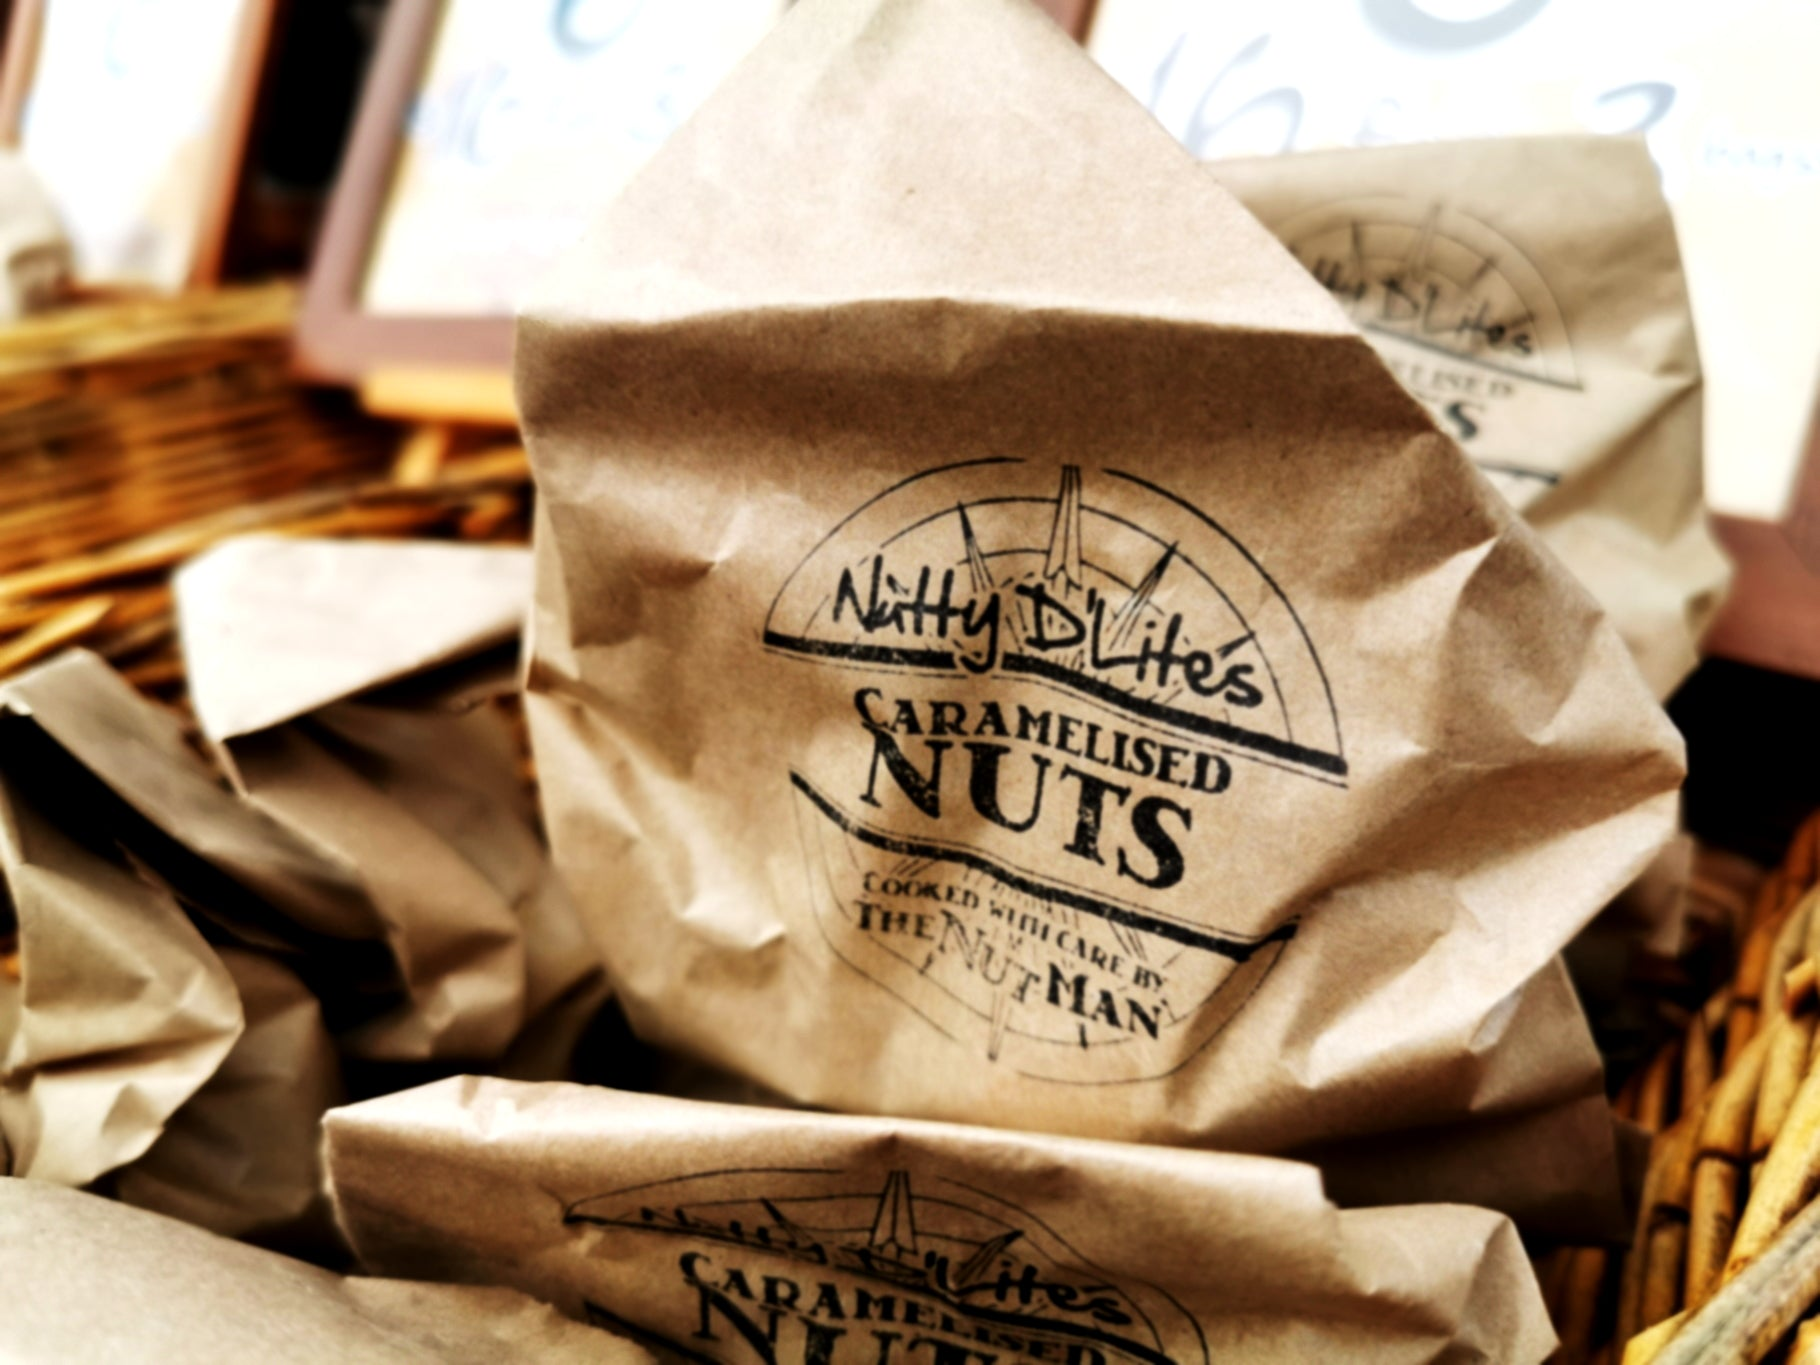 3 bag selection - Cashews, Almonds and Hazelnuts